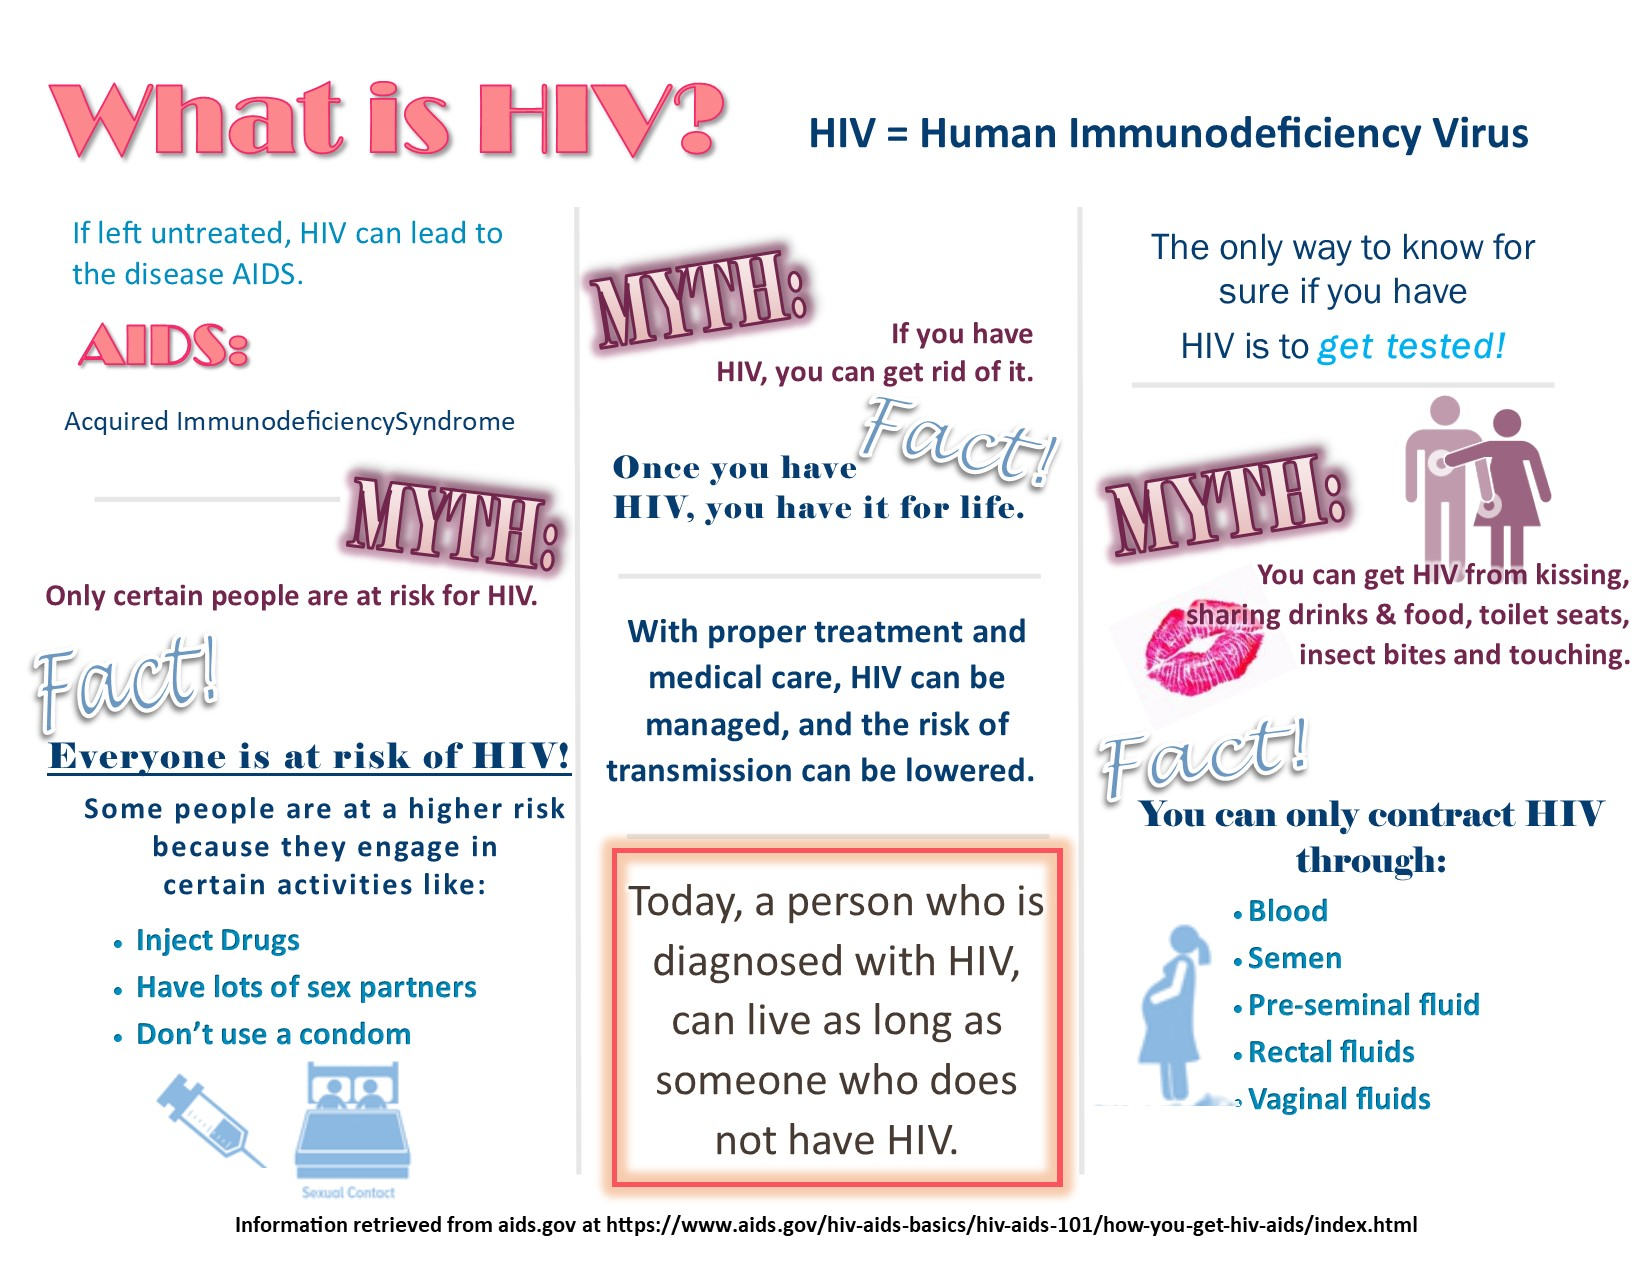 What is HIV? Human Immunodeficiency Virus. If left untreated, HIV can lead to the disease AIDS, Acquired Immunodeficiency Syndrome. Myth: Only certain people are at risk of HIV. Fact: Everyone is at risk of HIV! Myth: If you have HIV, you can get rid of it. Fact: Once you have HIV, you have it for life. With proper treatment and medical care, HIV can be managed and the risk of transmission can be lowered. Today, a person who is diagnosed with HIV can live as long as someone who does not have HIV. The only way to know for sure if you have HIV is to get tested! Myth: You can get HIV from kissing, sharing drinks and food, toilet seats, insect bites and touching. Fact: You can only contract HIV through blood, semen, pre-seminal fluid, rectal fluids, vaginal fluids.